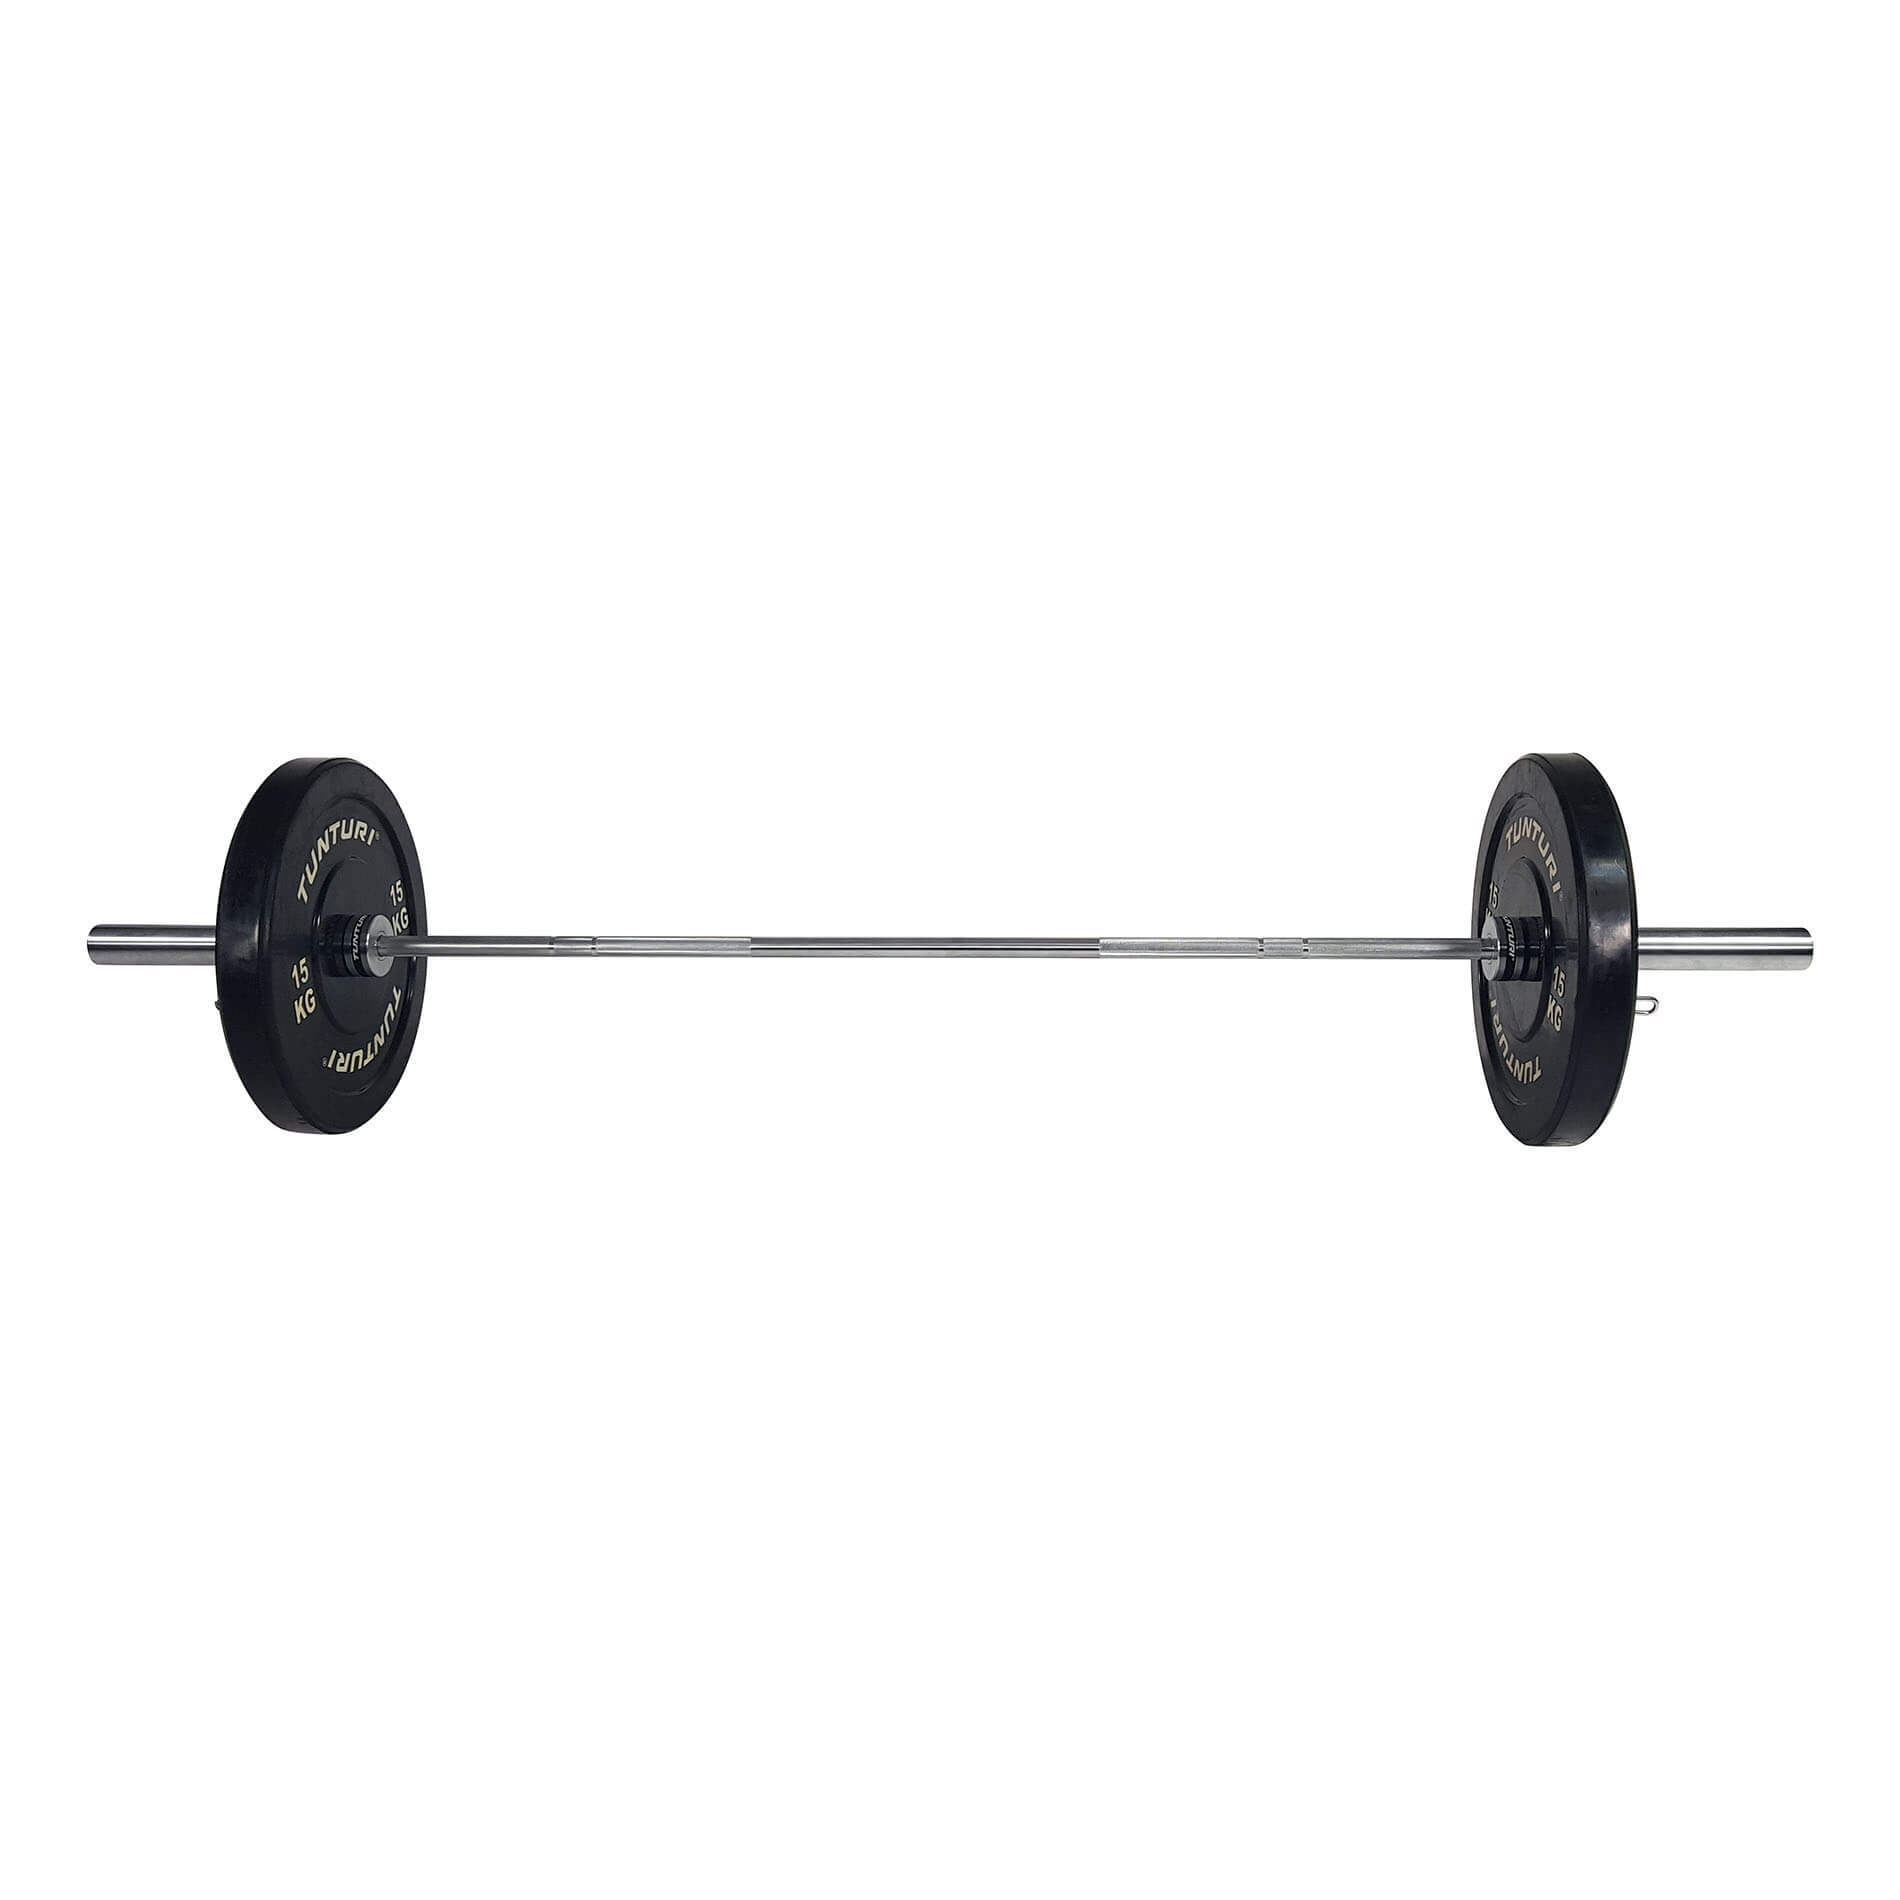 Cross Fit Olympic Woman Bar, 15kg, 201cm, 25mm handle